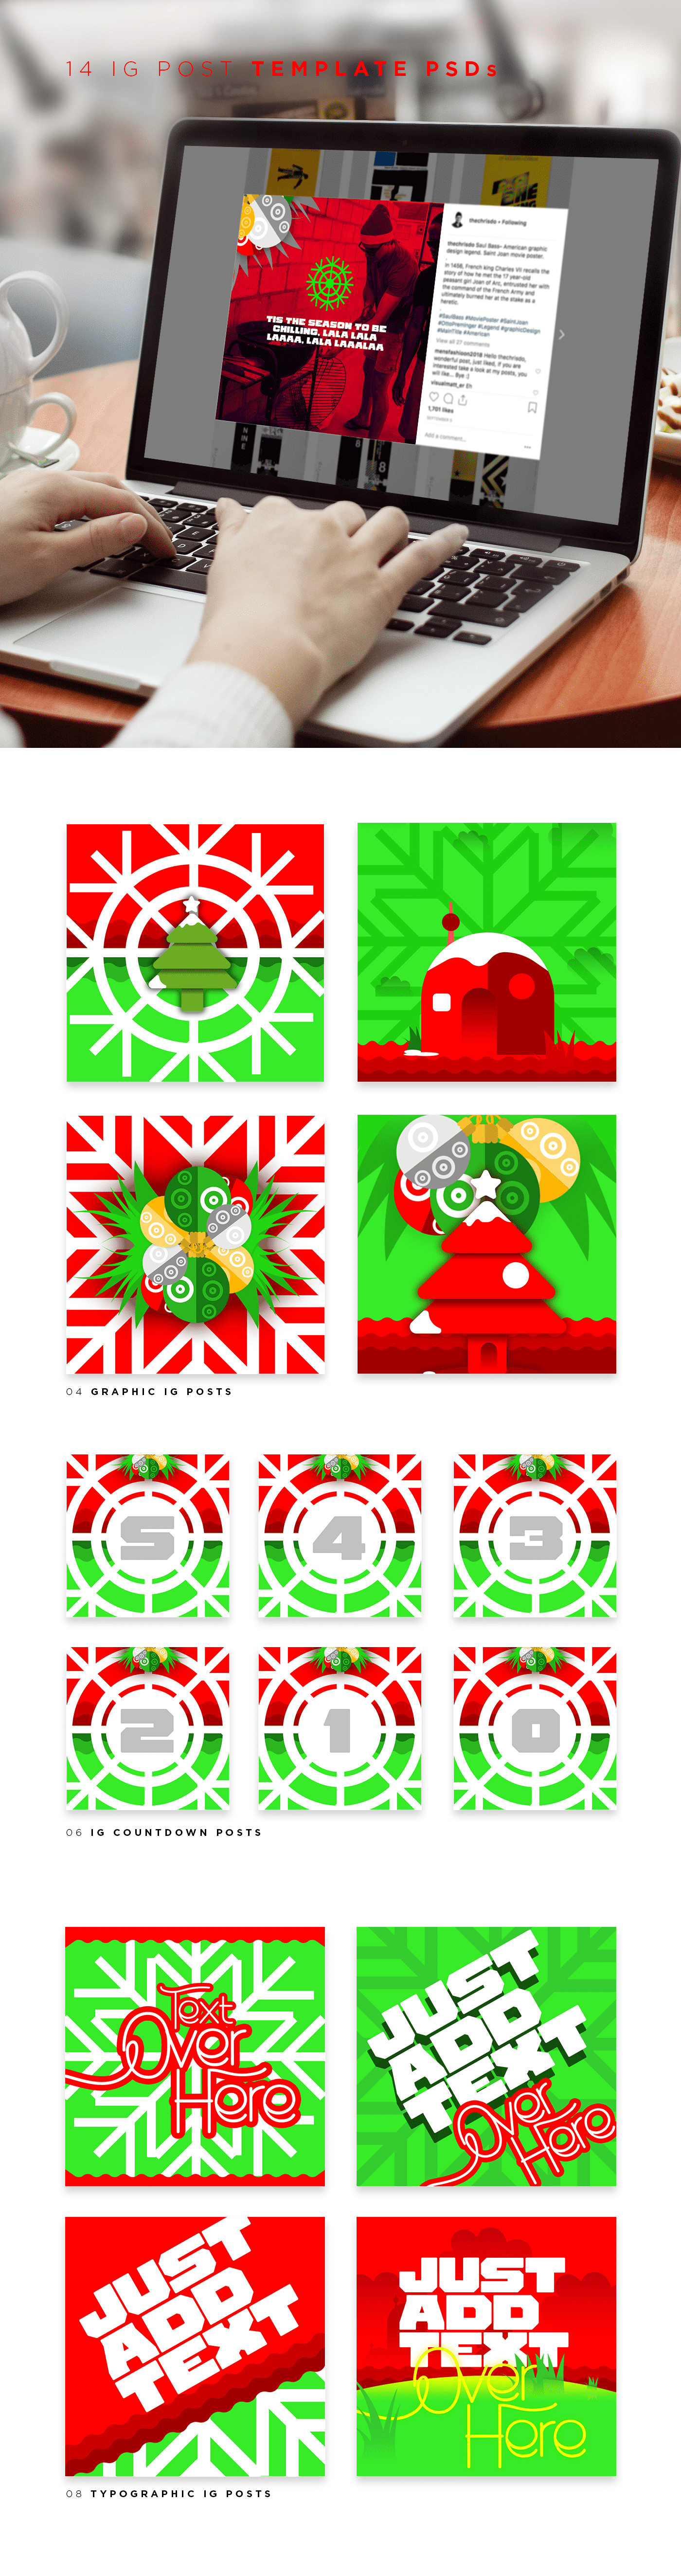 Xmas Meadow Collection - $17 ONLY - 06